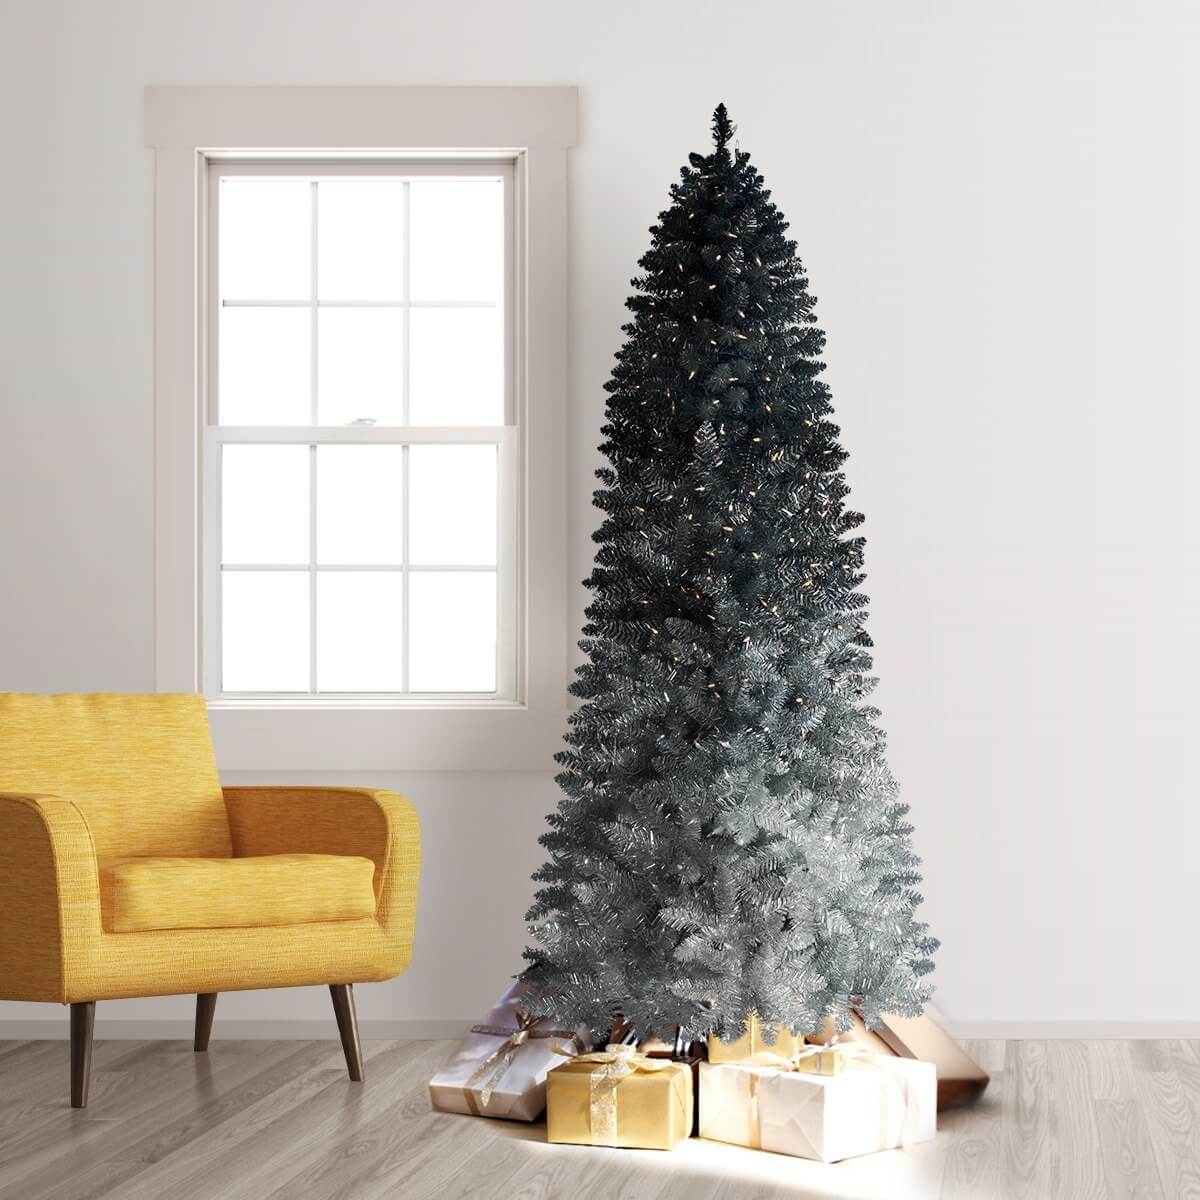 4 Ombré Christmas Trees To Light Up Your Holidaysu2015Looking To Brighten Up  Your Home